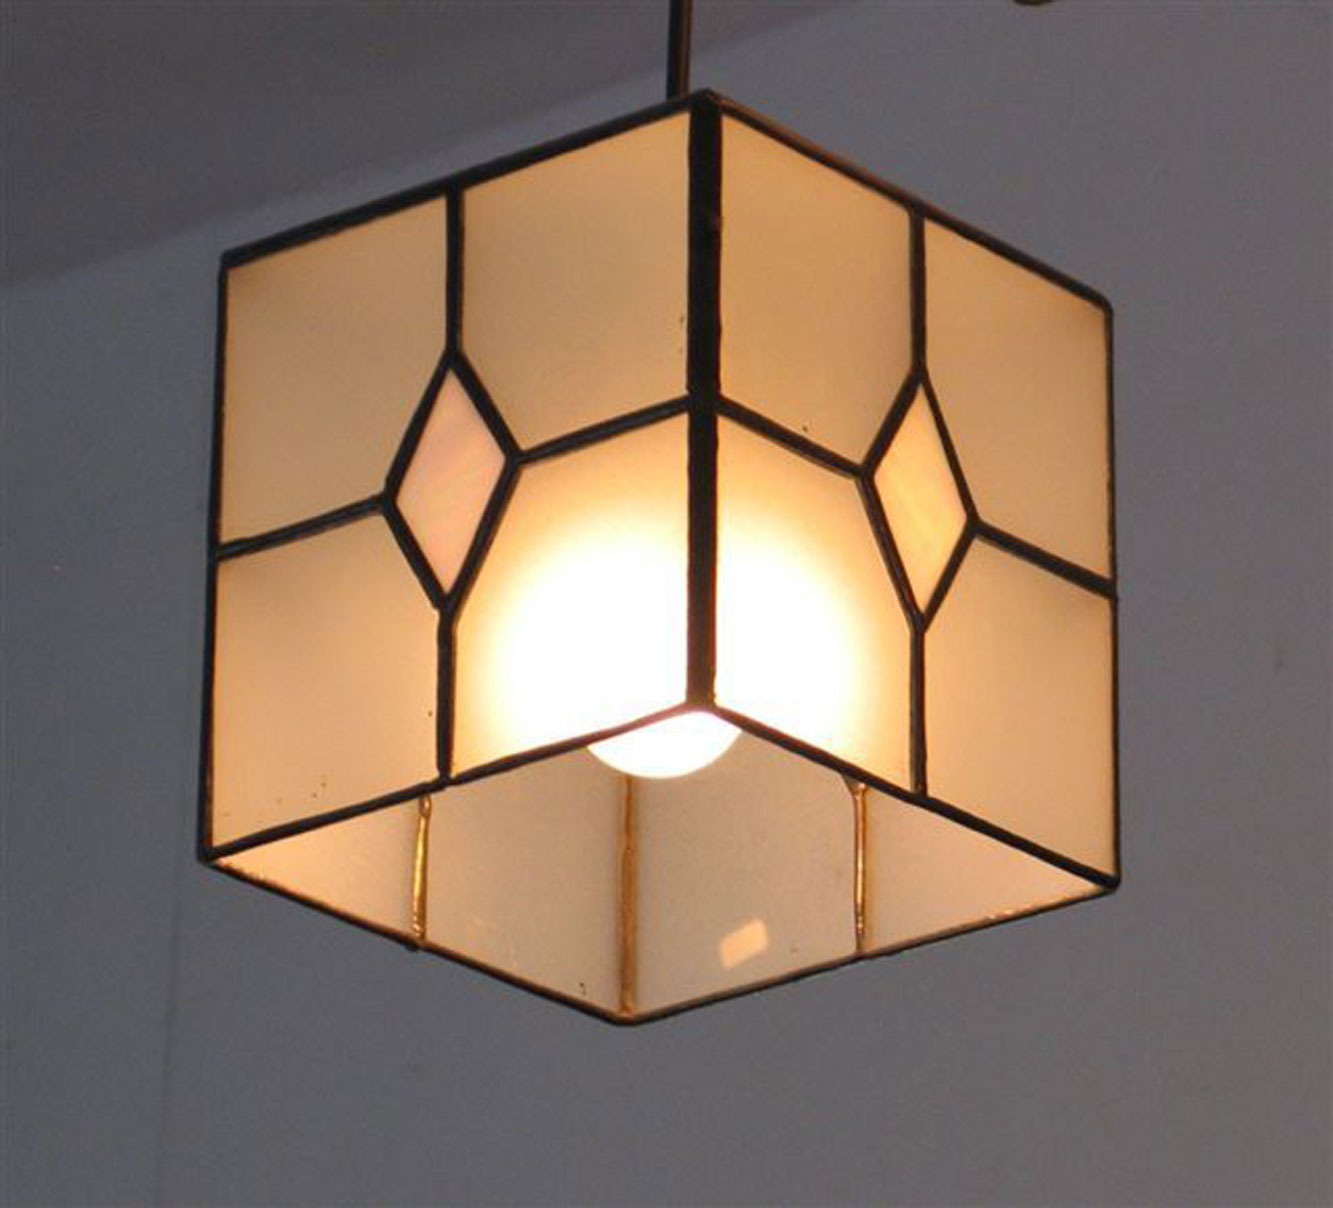 light fixtures- Cube, divided, 15 cm